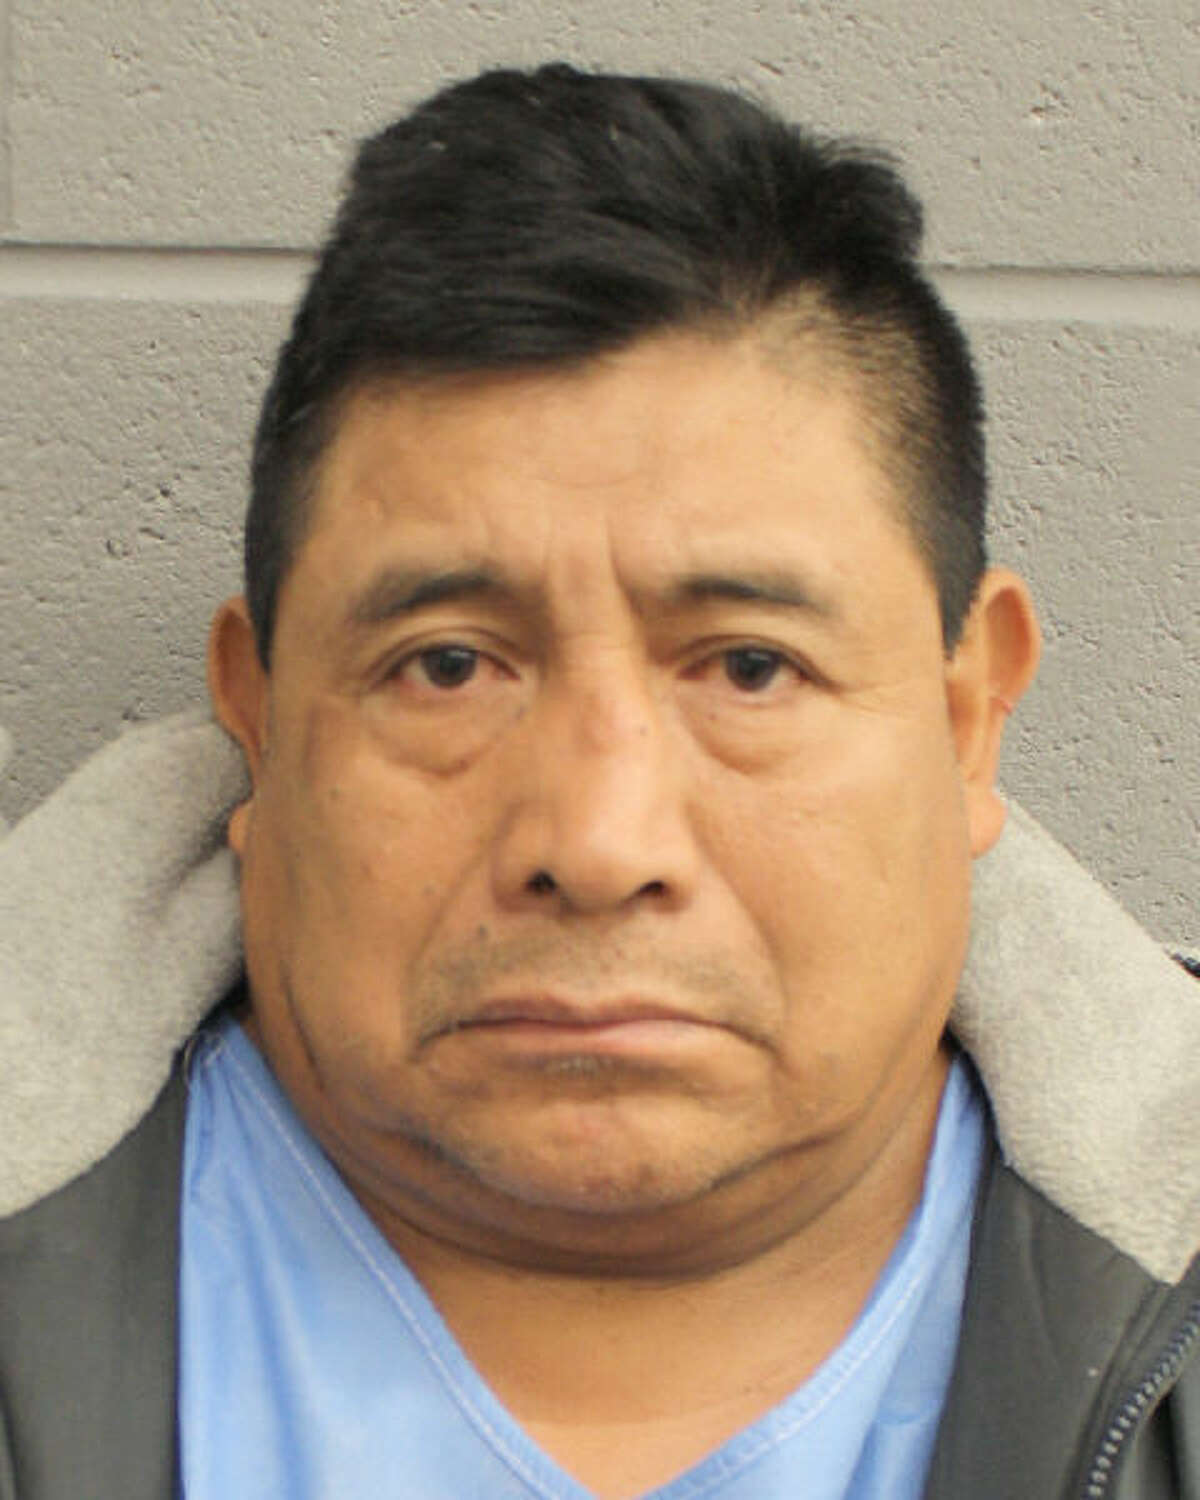 Carlos Lopez-Obispo, 47, was charged with intoxication manslaughter.